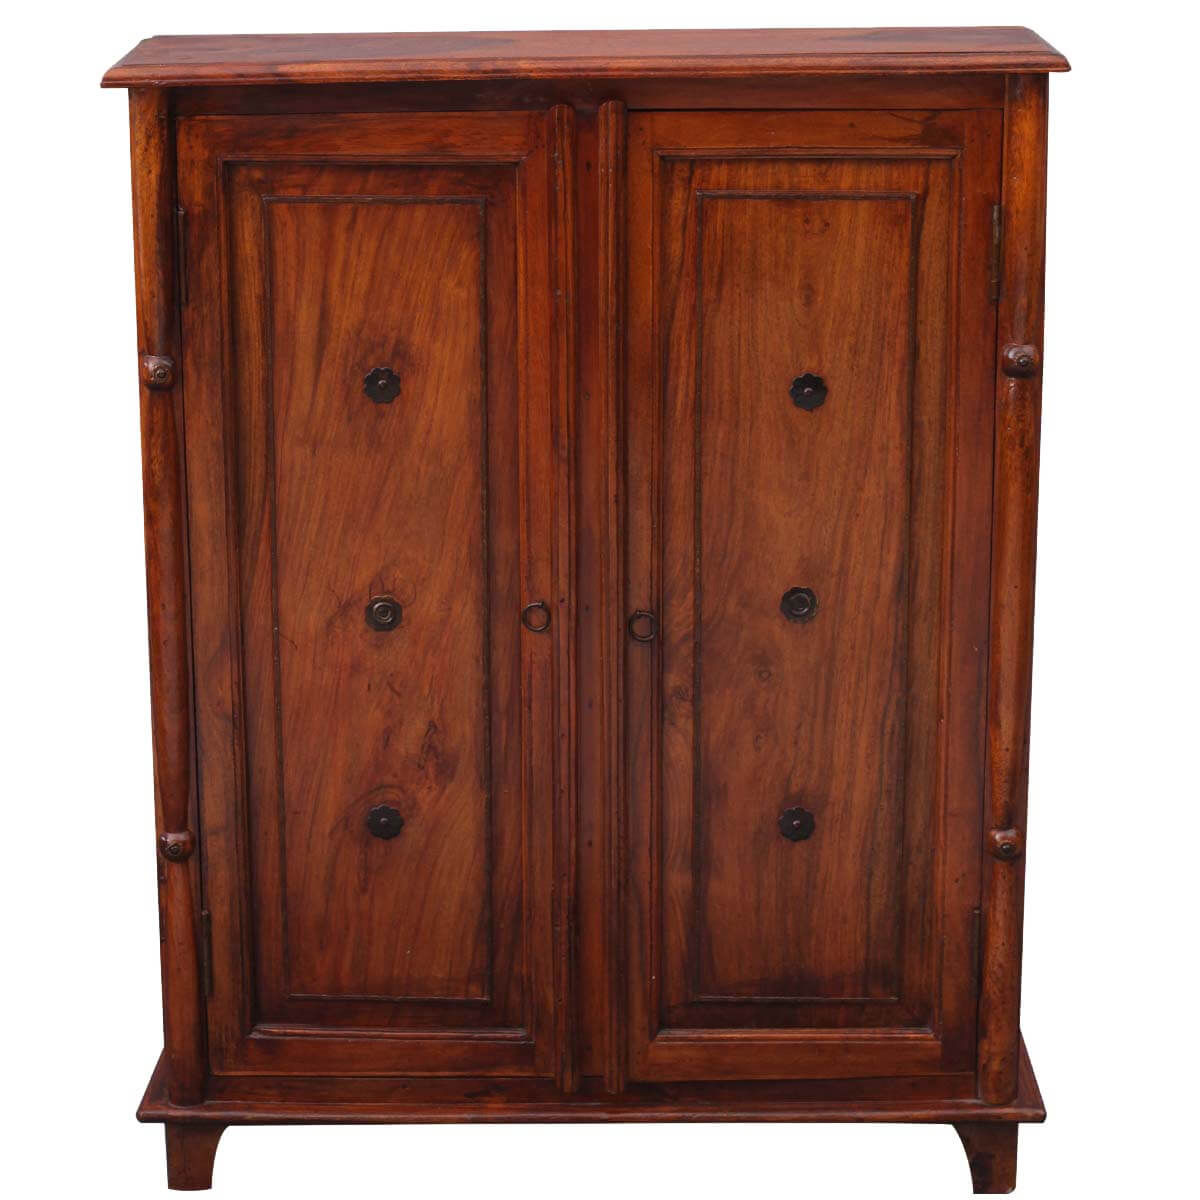 cabinets rack shaker solid wood bathroom or kitchen shallow cabinet